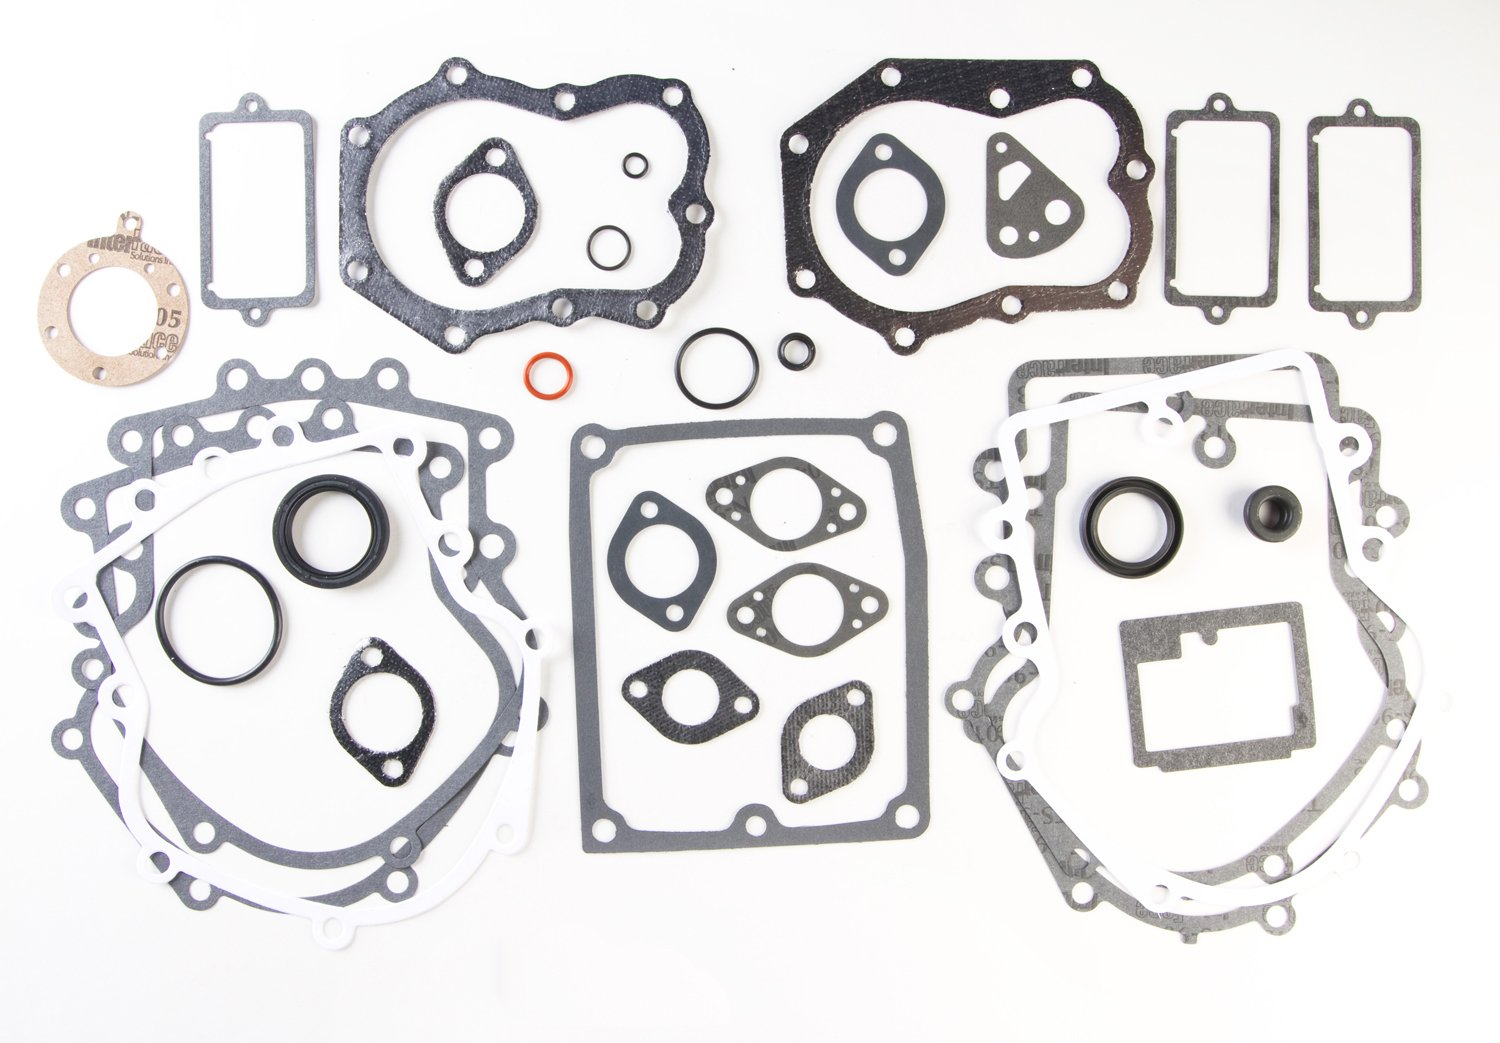 Briggs & Stratton 495868 Engine Gasket Set Replaces 491856, 394501, 393278